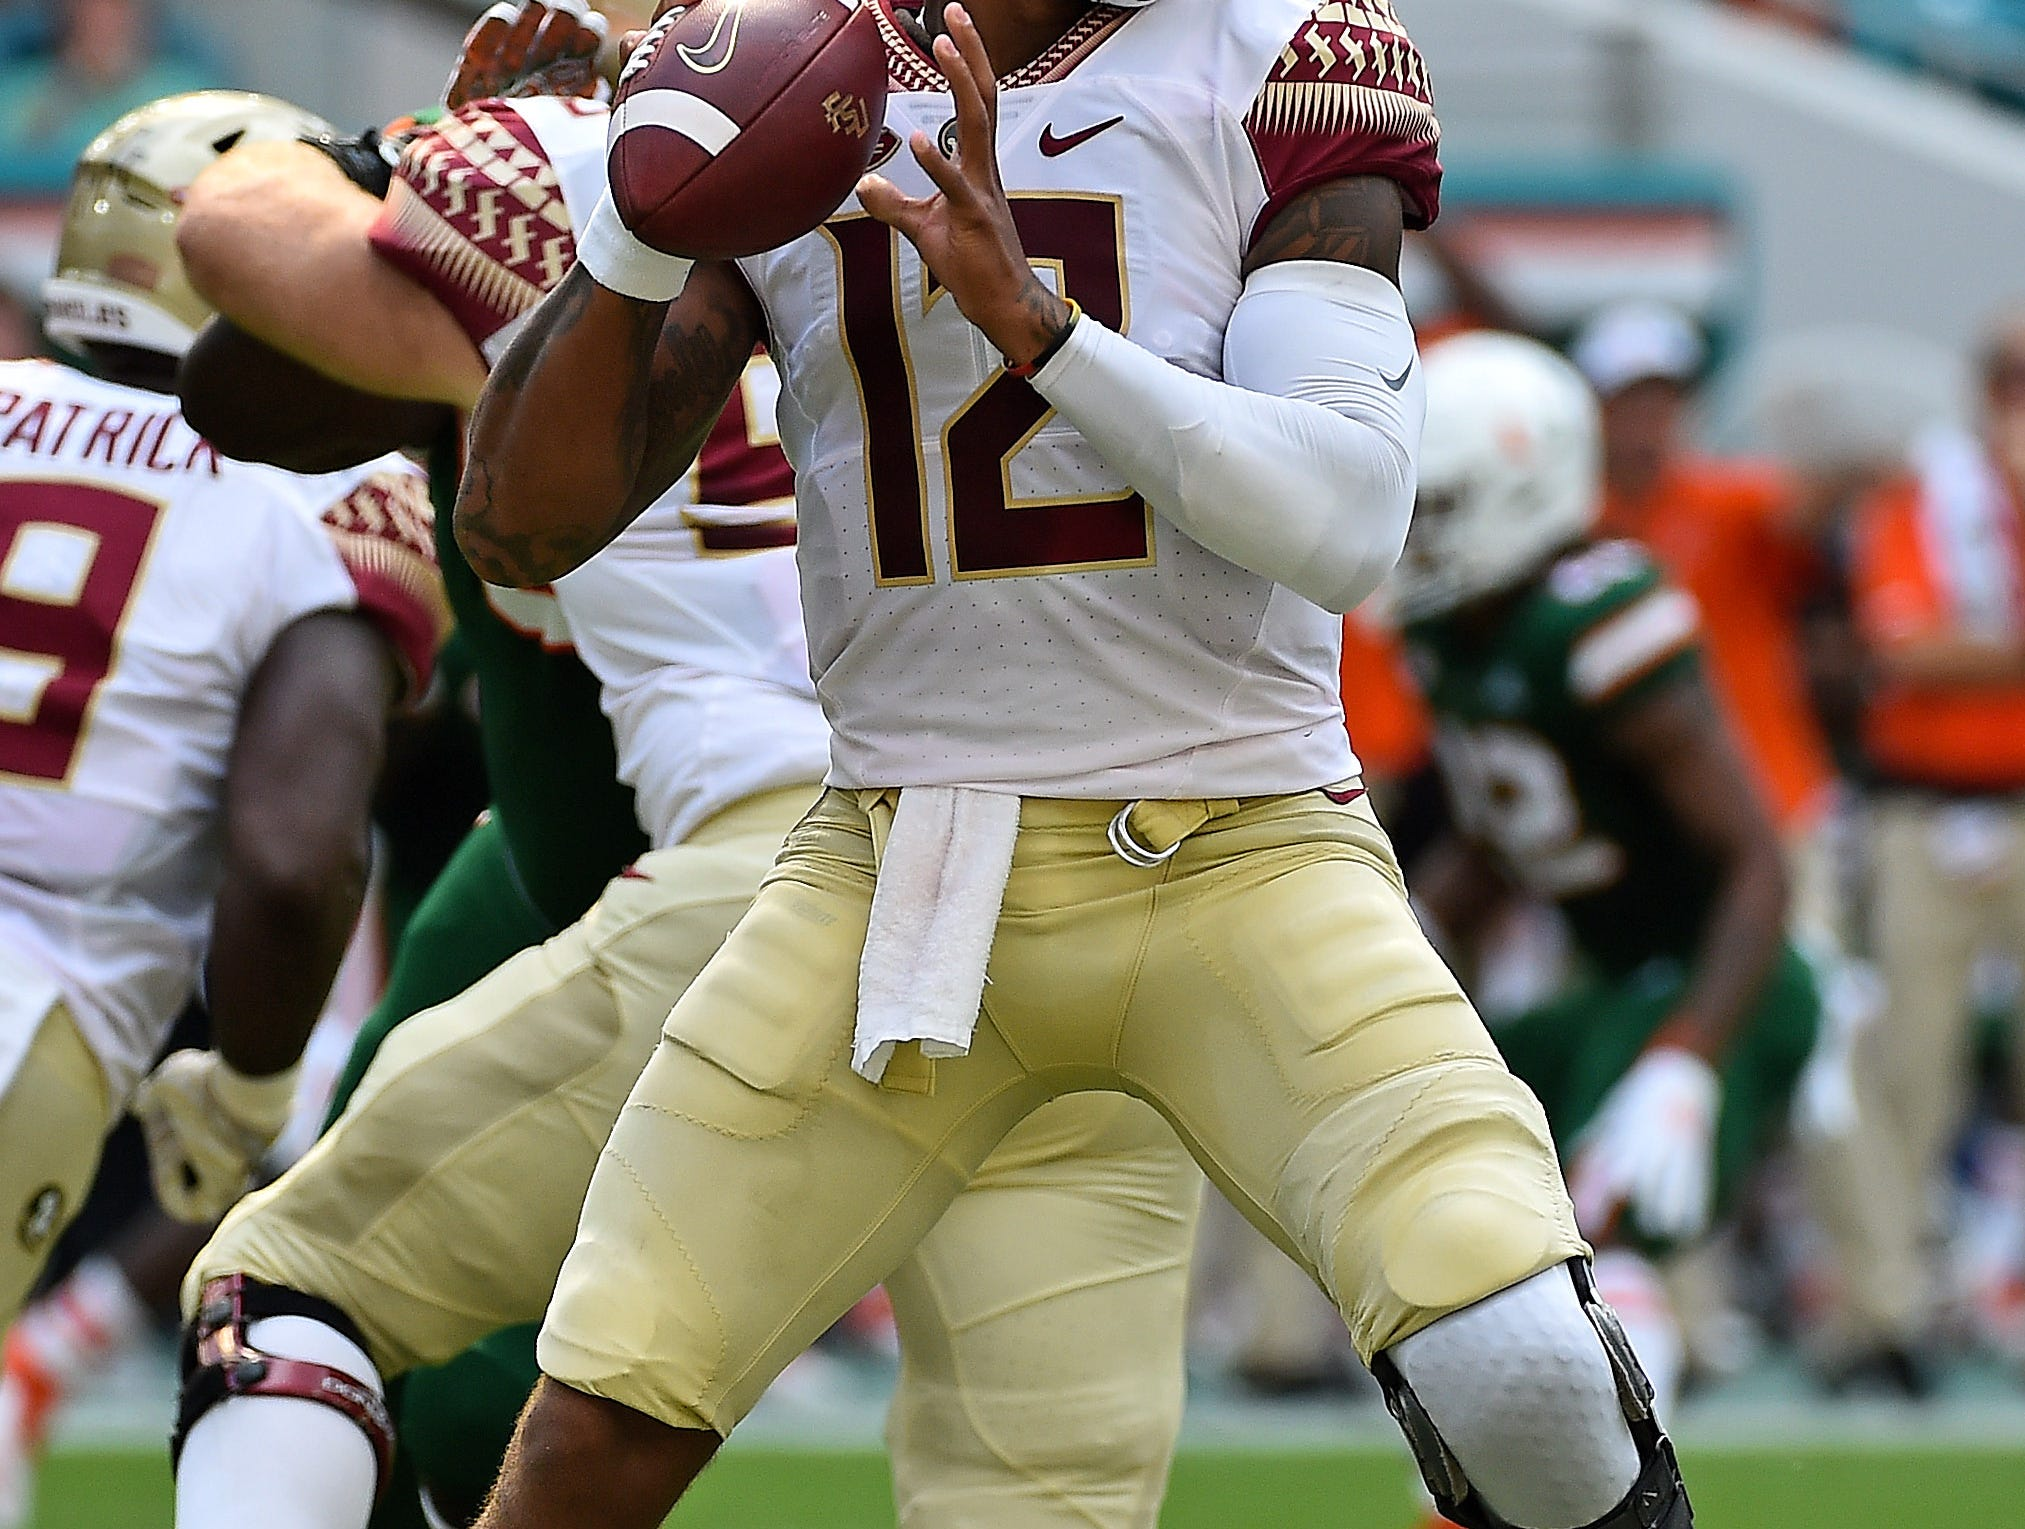 Oct 6, 2018; Miami Gardens, FL, USA; Florida State Seminoles quarterback Deondre Francois (12) attempts a pass against the Miami Hurricanes during the first half at Hard Rock Stadium. Mandatory Credit: Jasen Vinlove-USA TODAY Sports